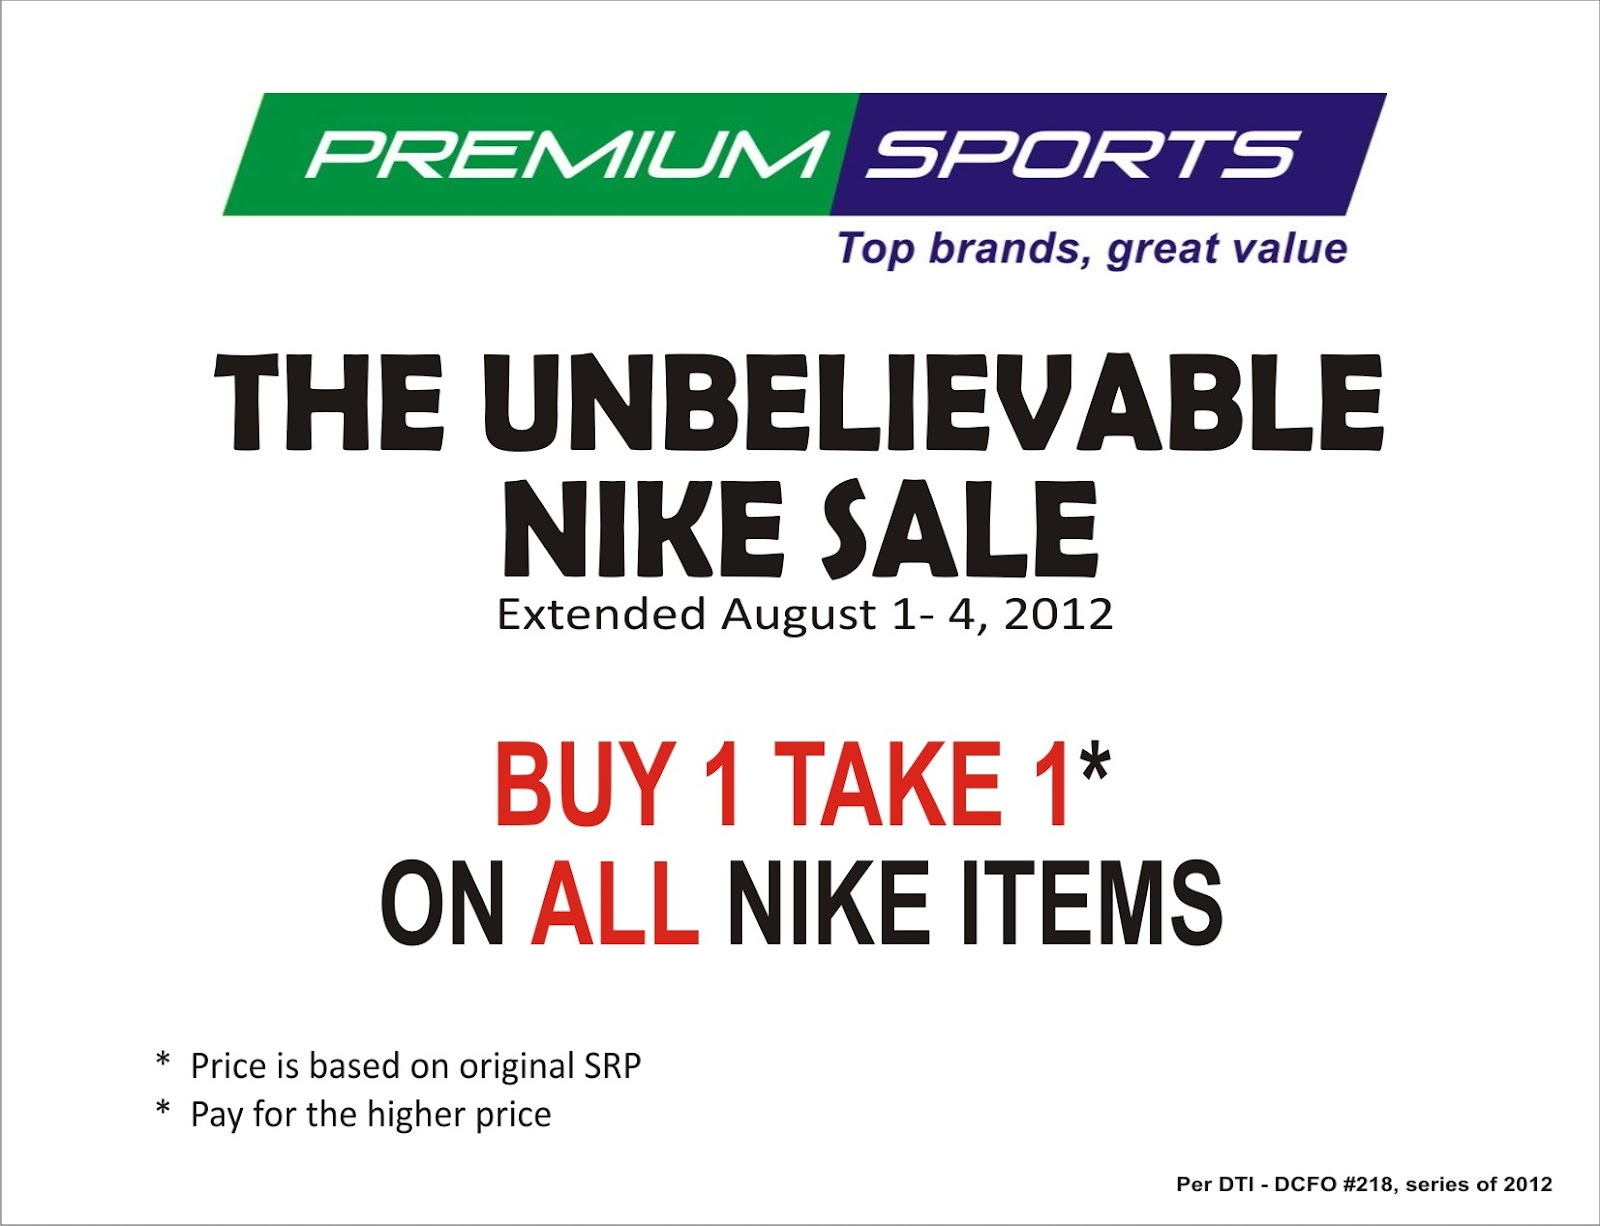 d i g g davao premium sports outlet extended the unbelievable nike sale buy1 take1 from august 1 4 2012 d i g g davao blogger